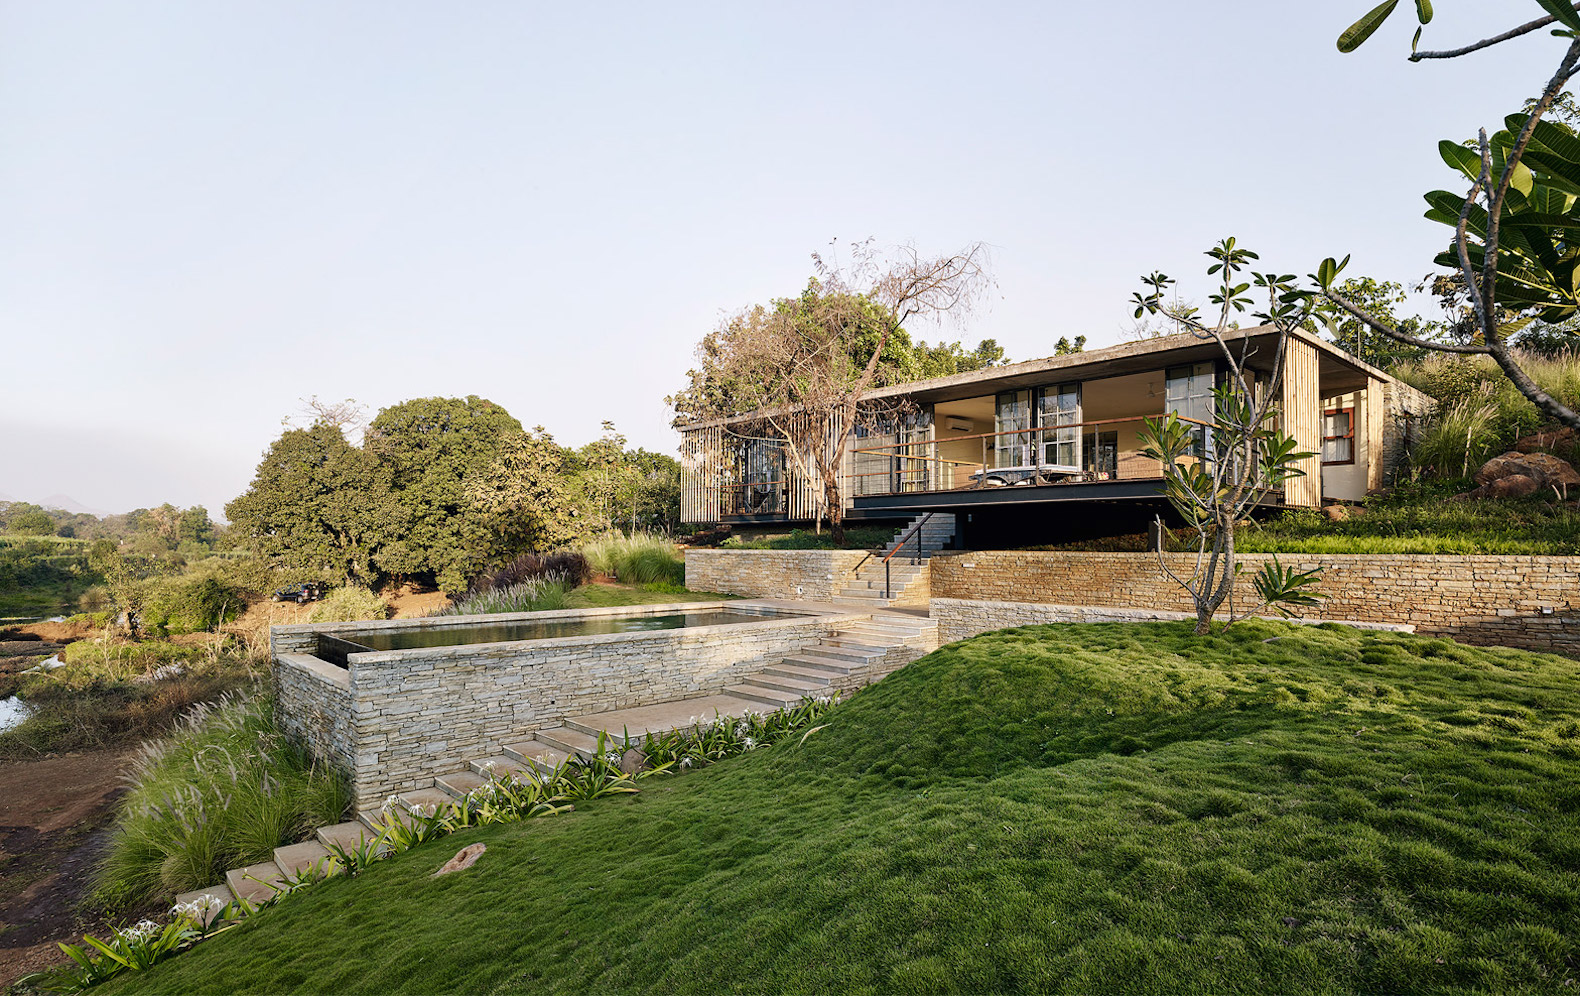 Green-roofed home sinks into a beautiful UNESCO-protected riverside in India